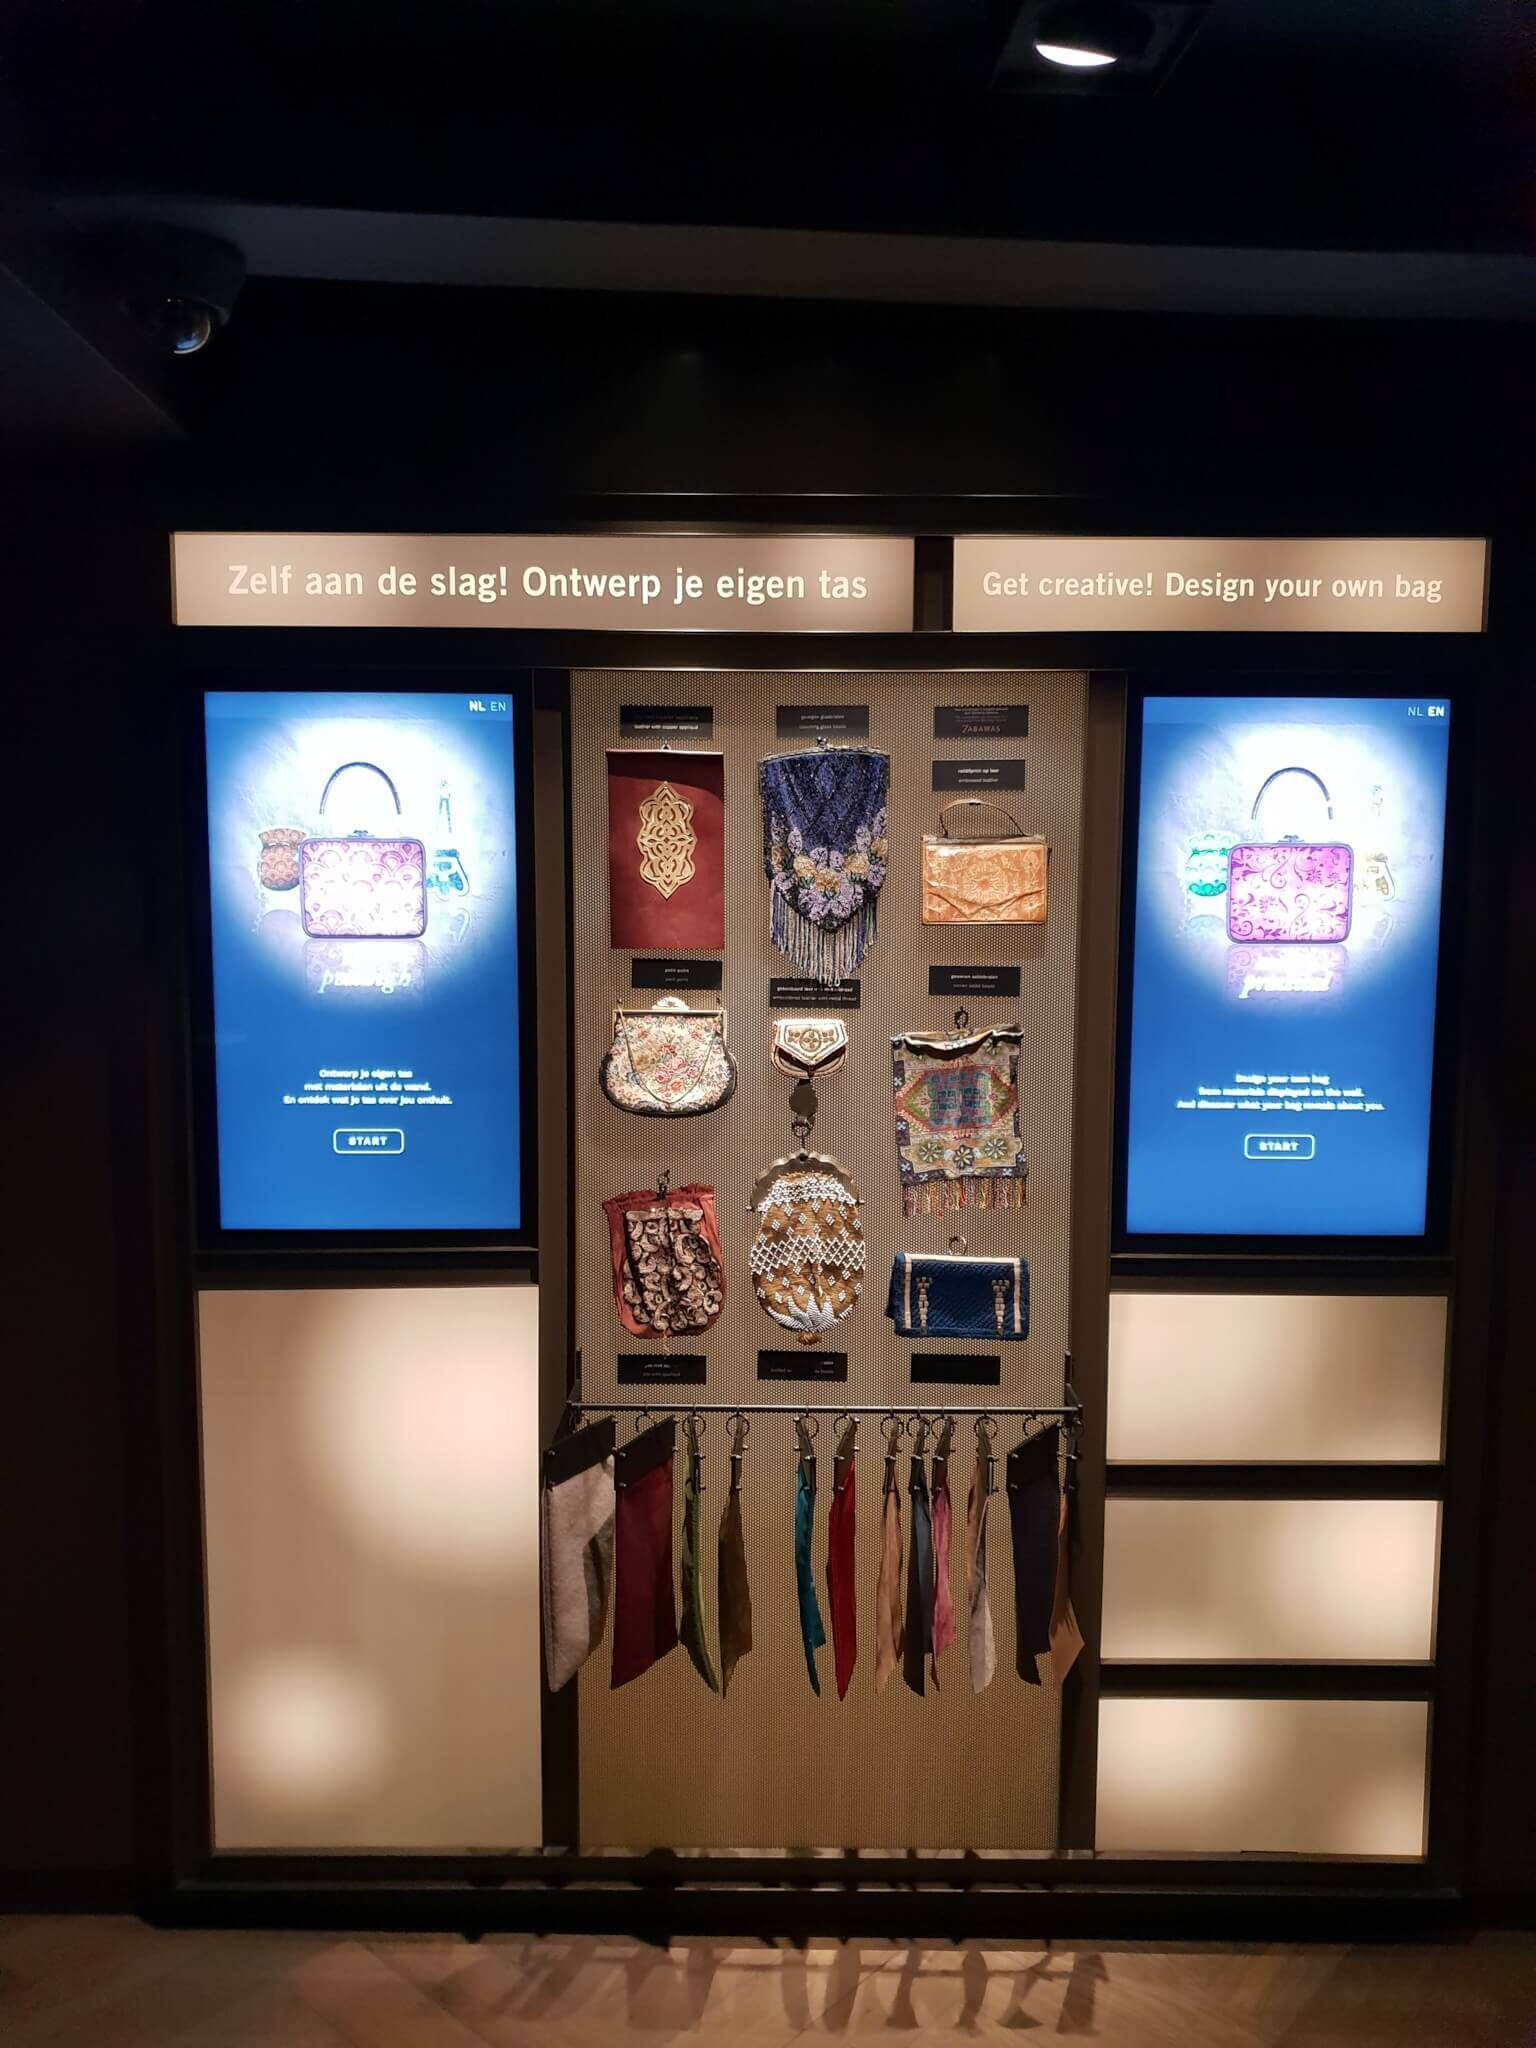 Design Your Own Bag at Tassenmuseum